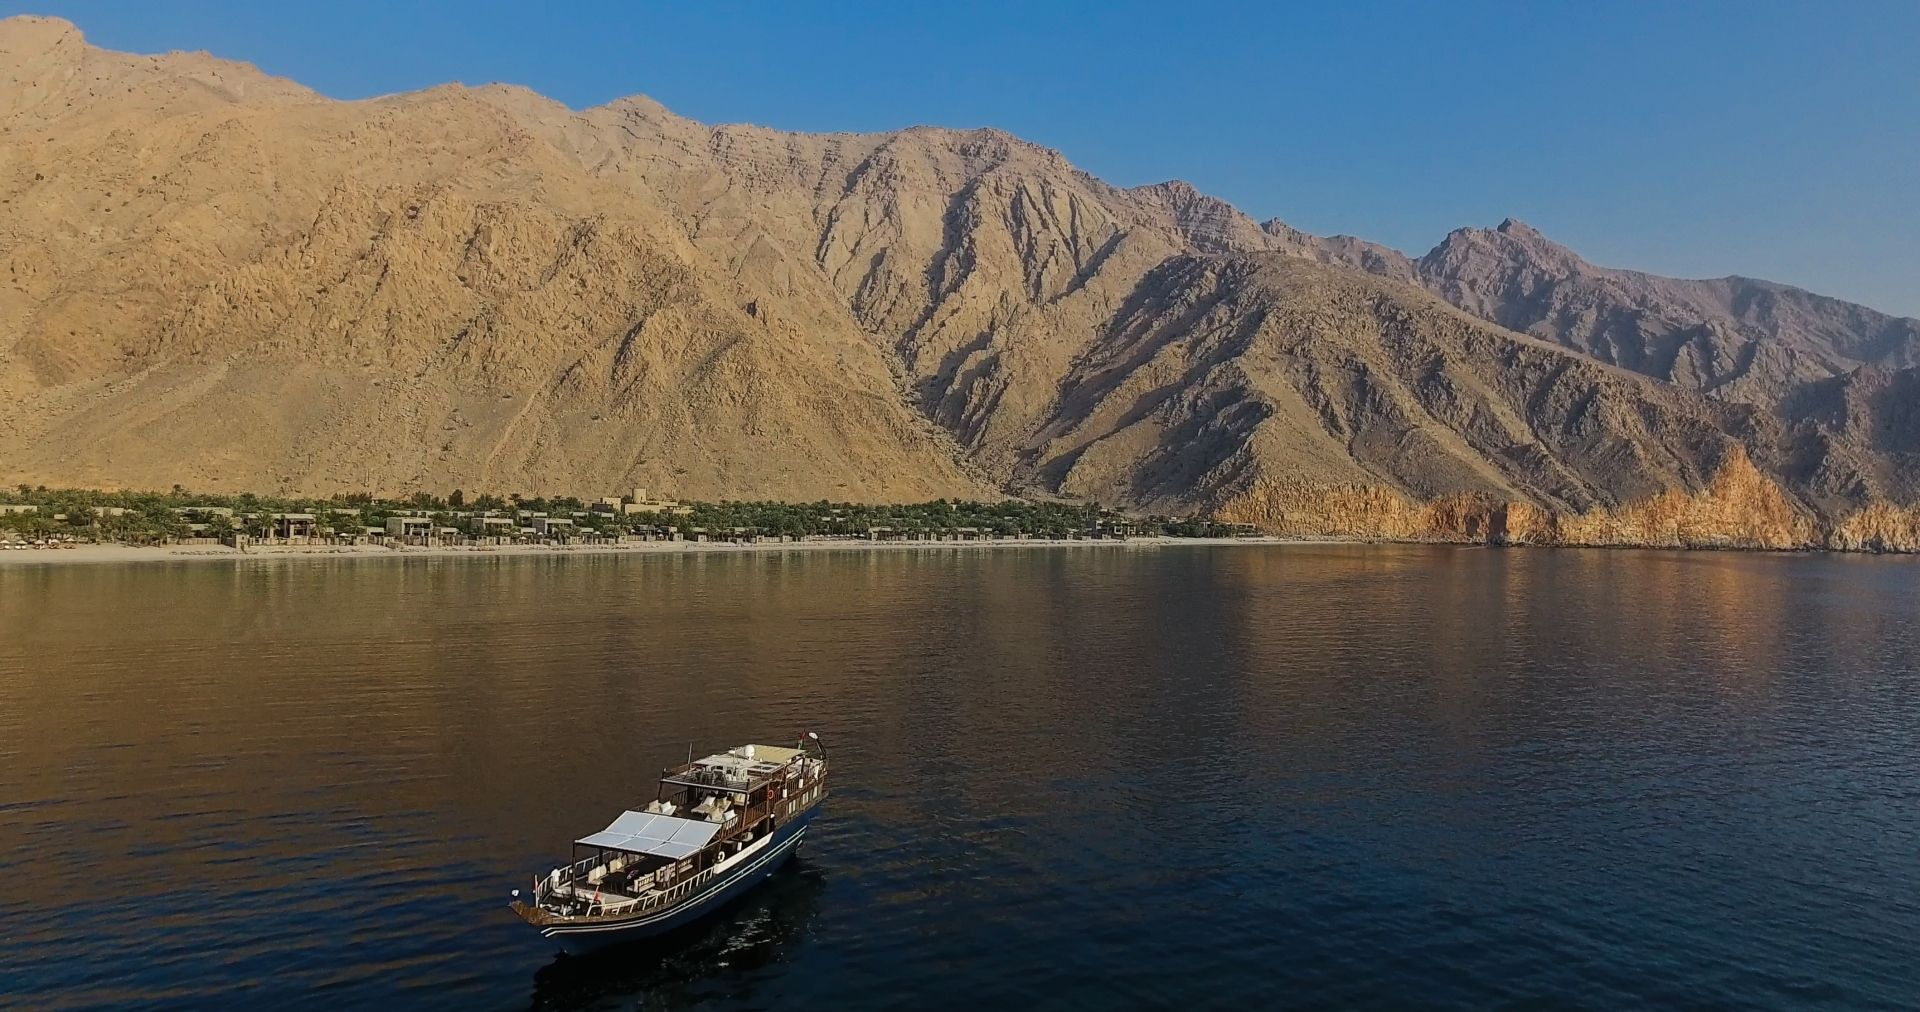 The bay with the resort's boat – Dhahab